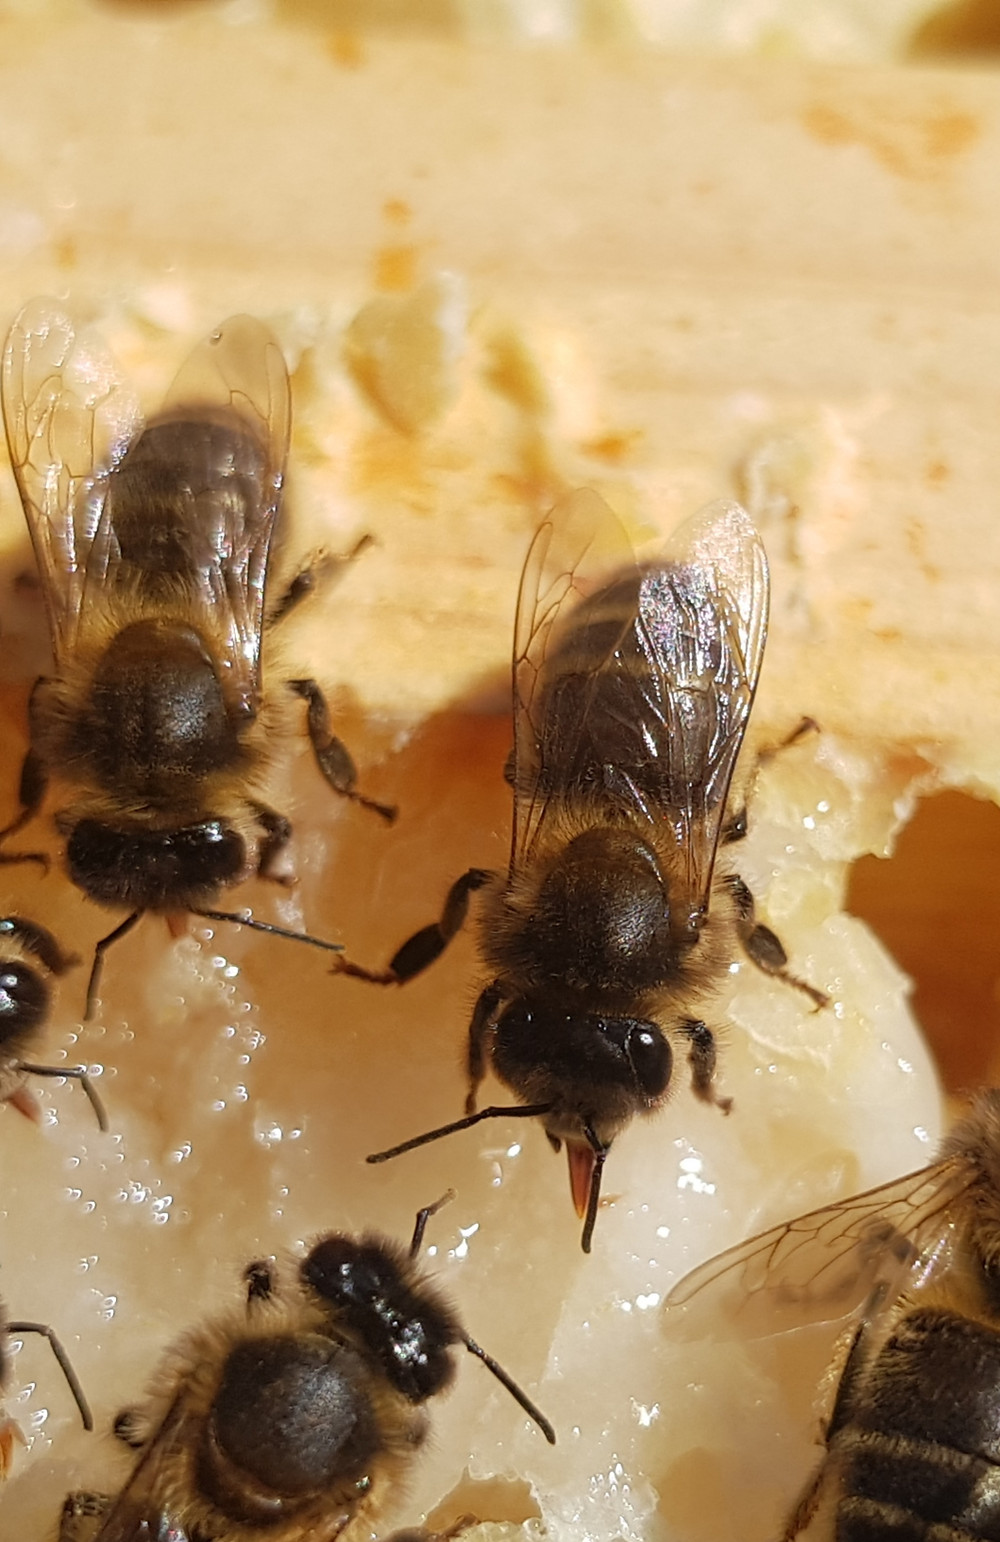 A closeup of three bees on a comb of honey